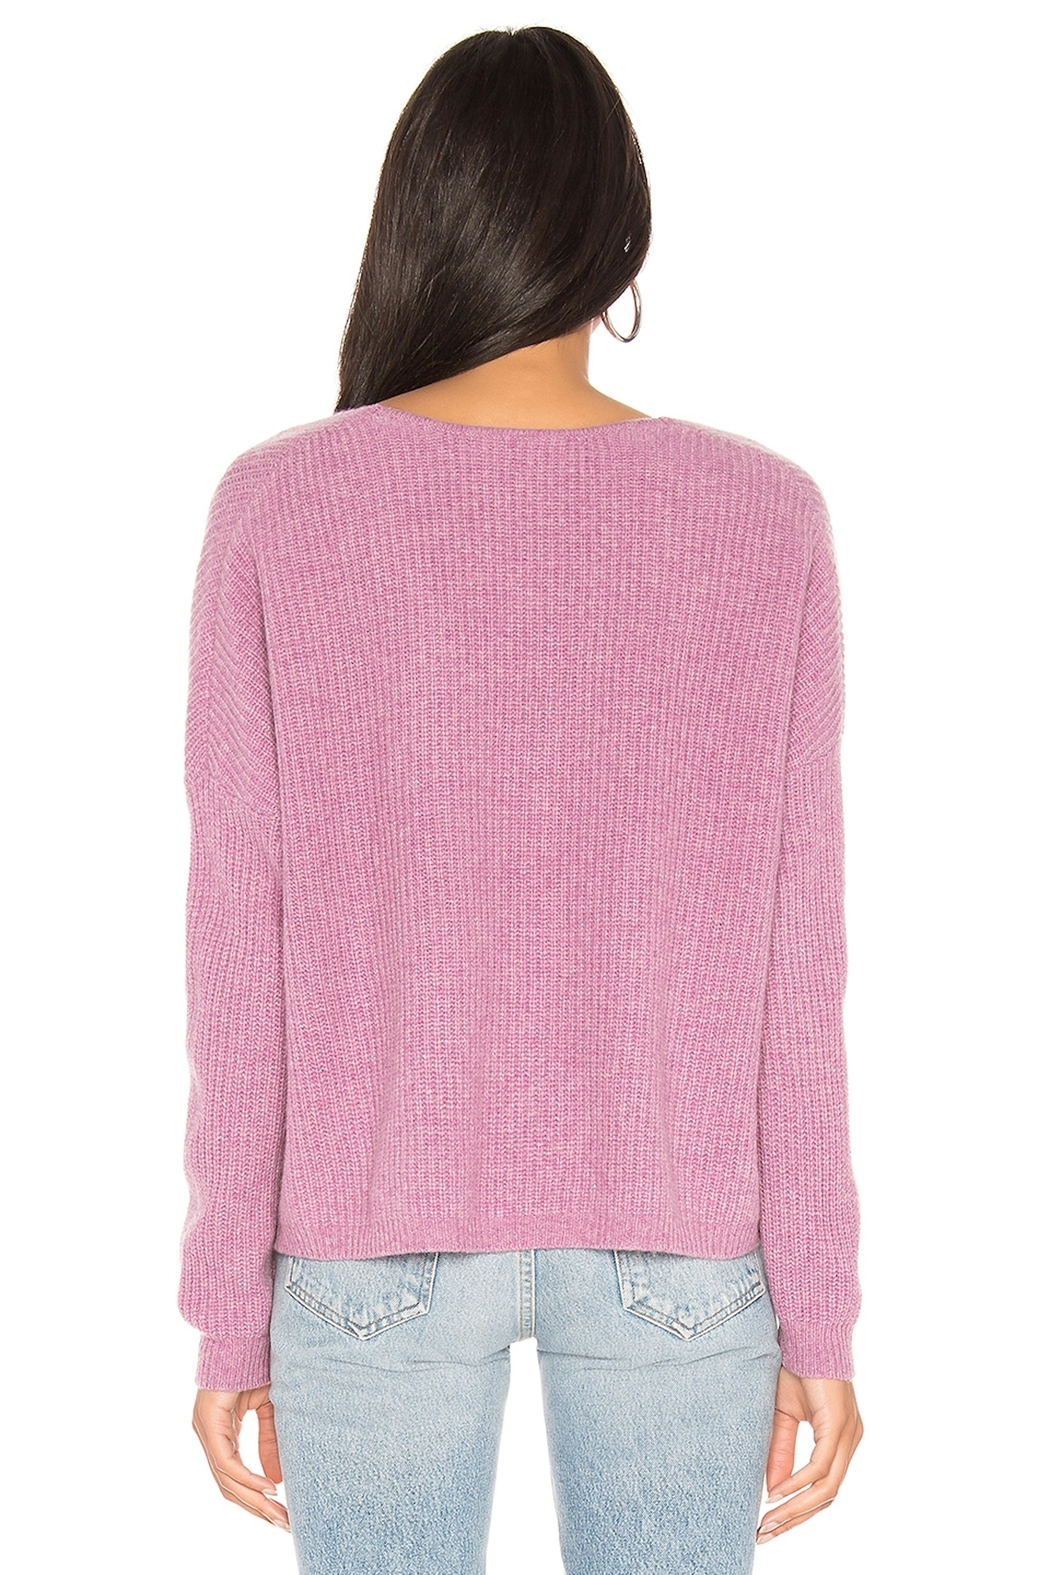 One Grey Day Paxton Pink Pullover - Side Cropped Image